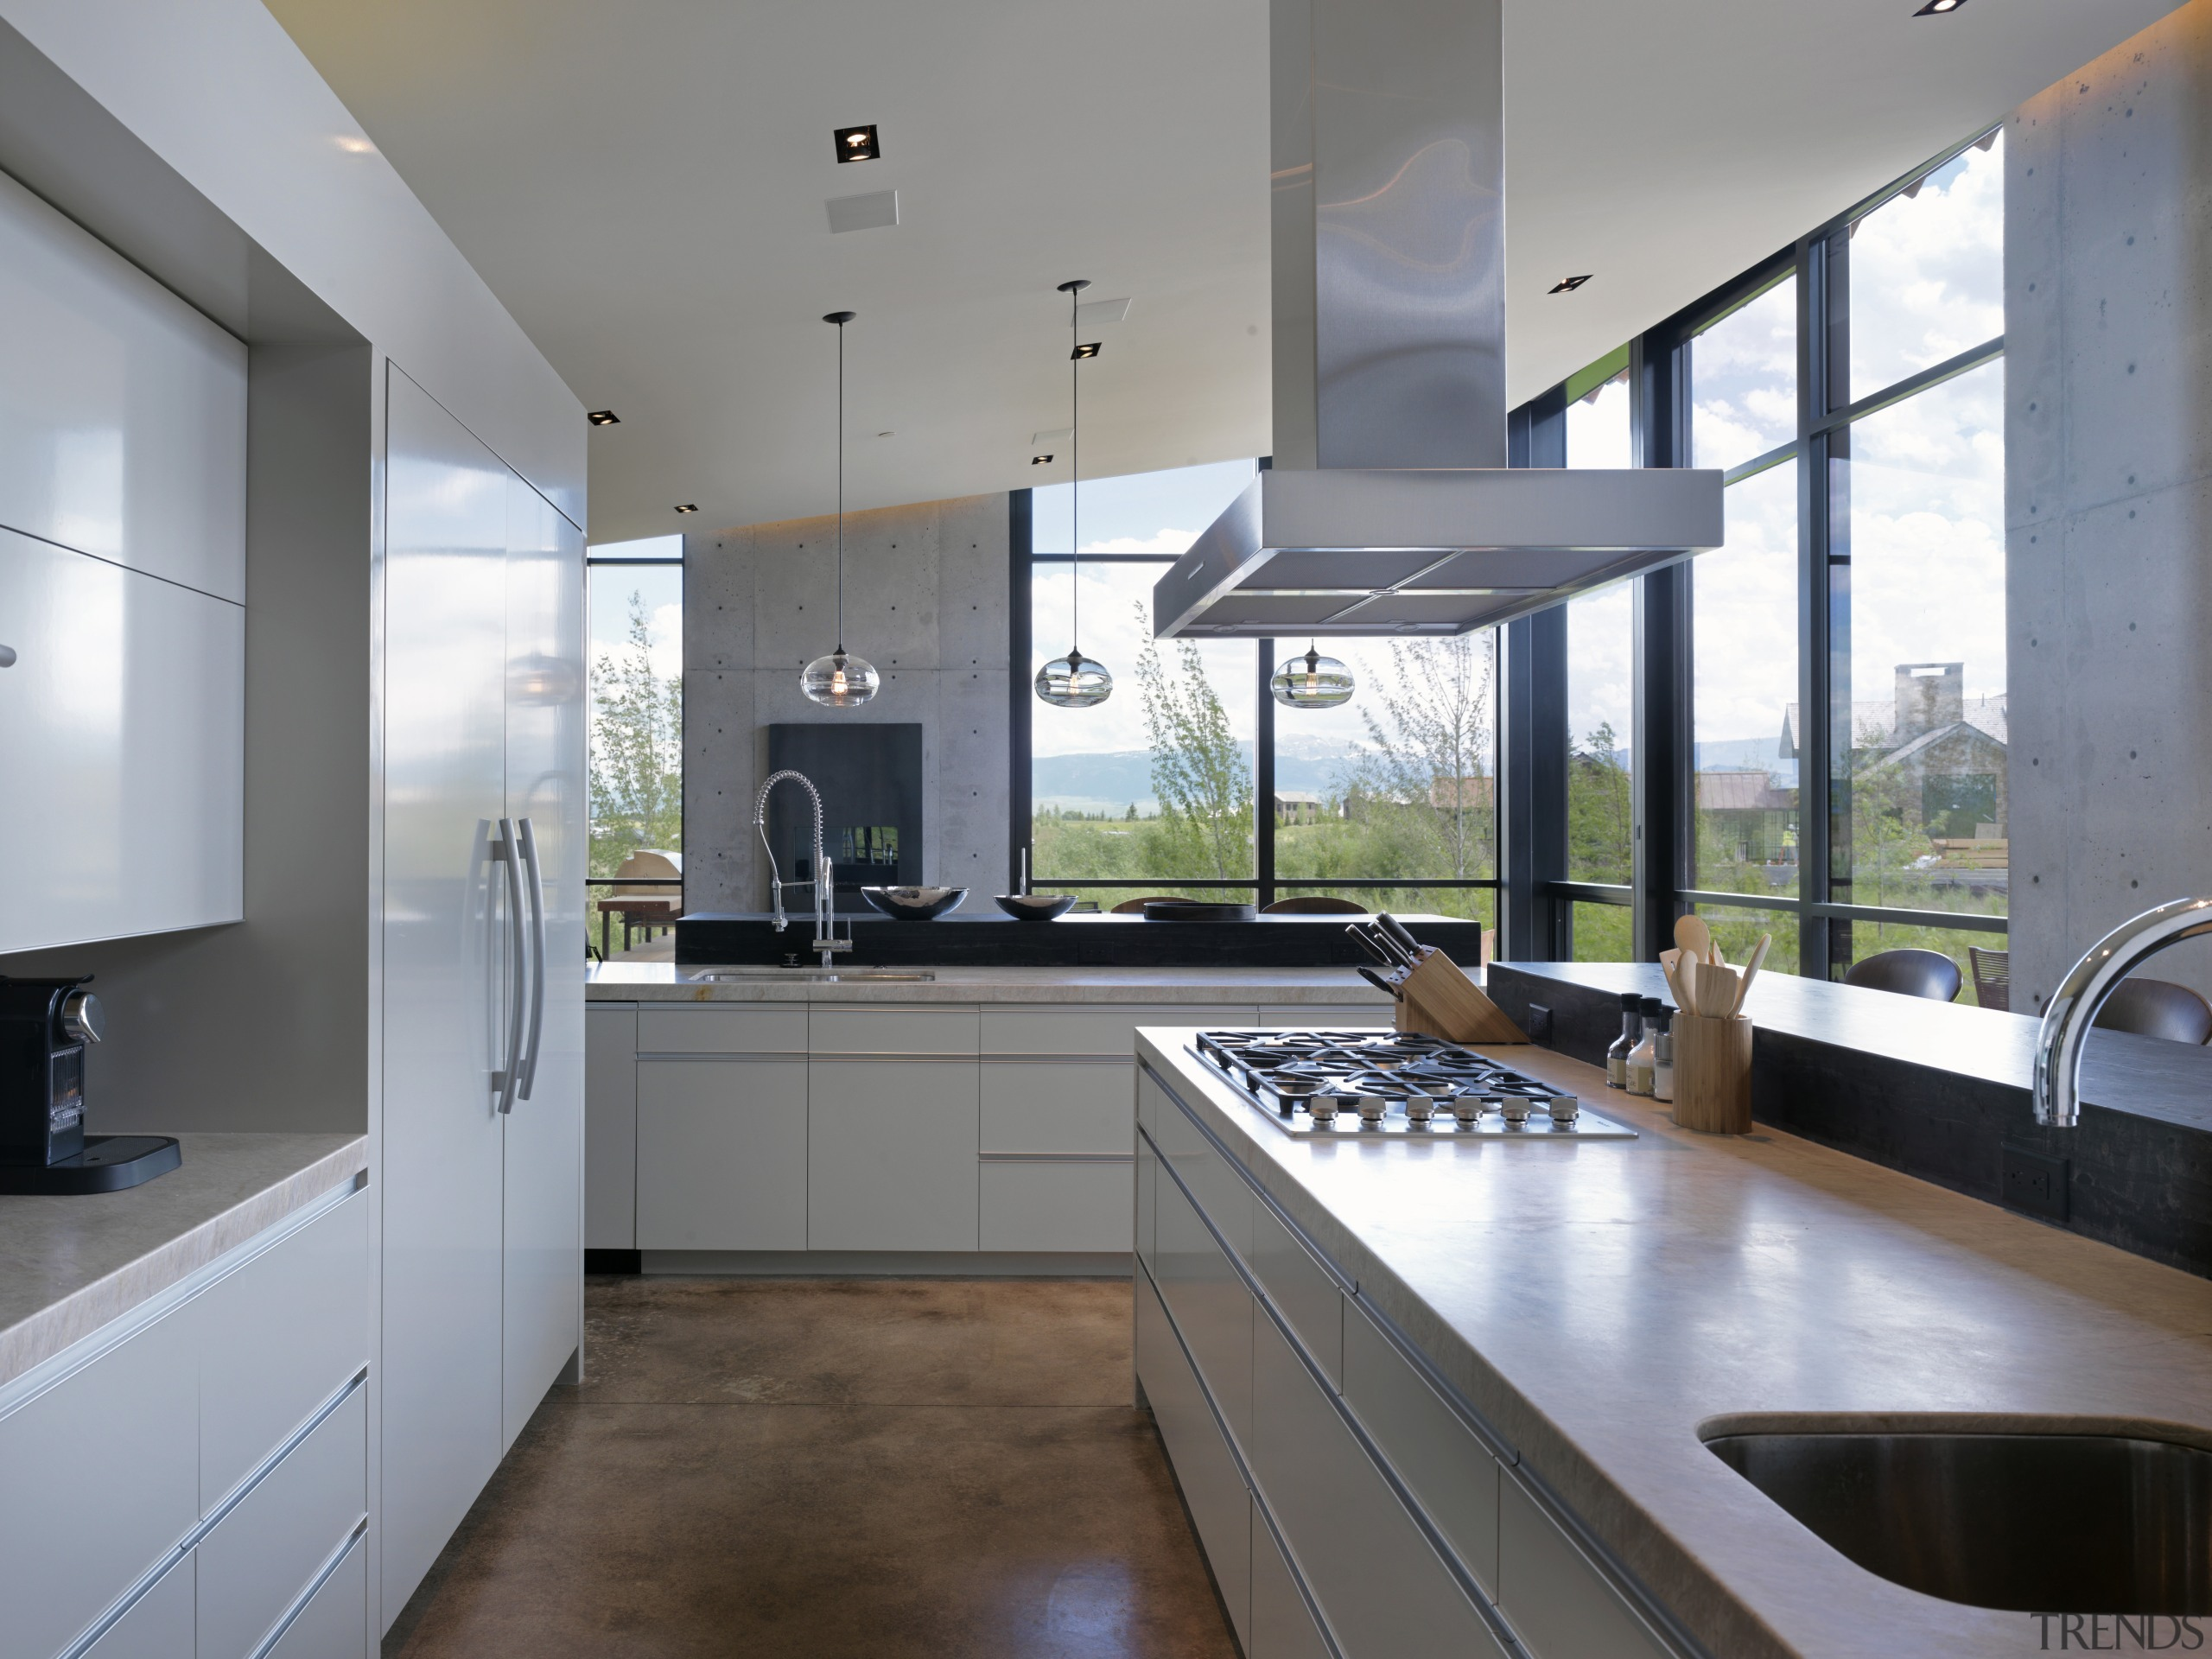 The ceiling in this modern mountain home rises countertop, daylighting, interior design, kitchen, real estate, gray